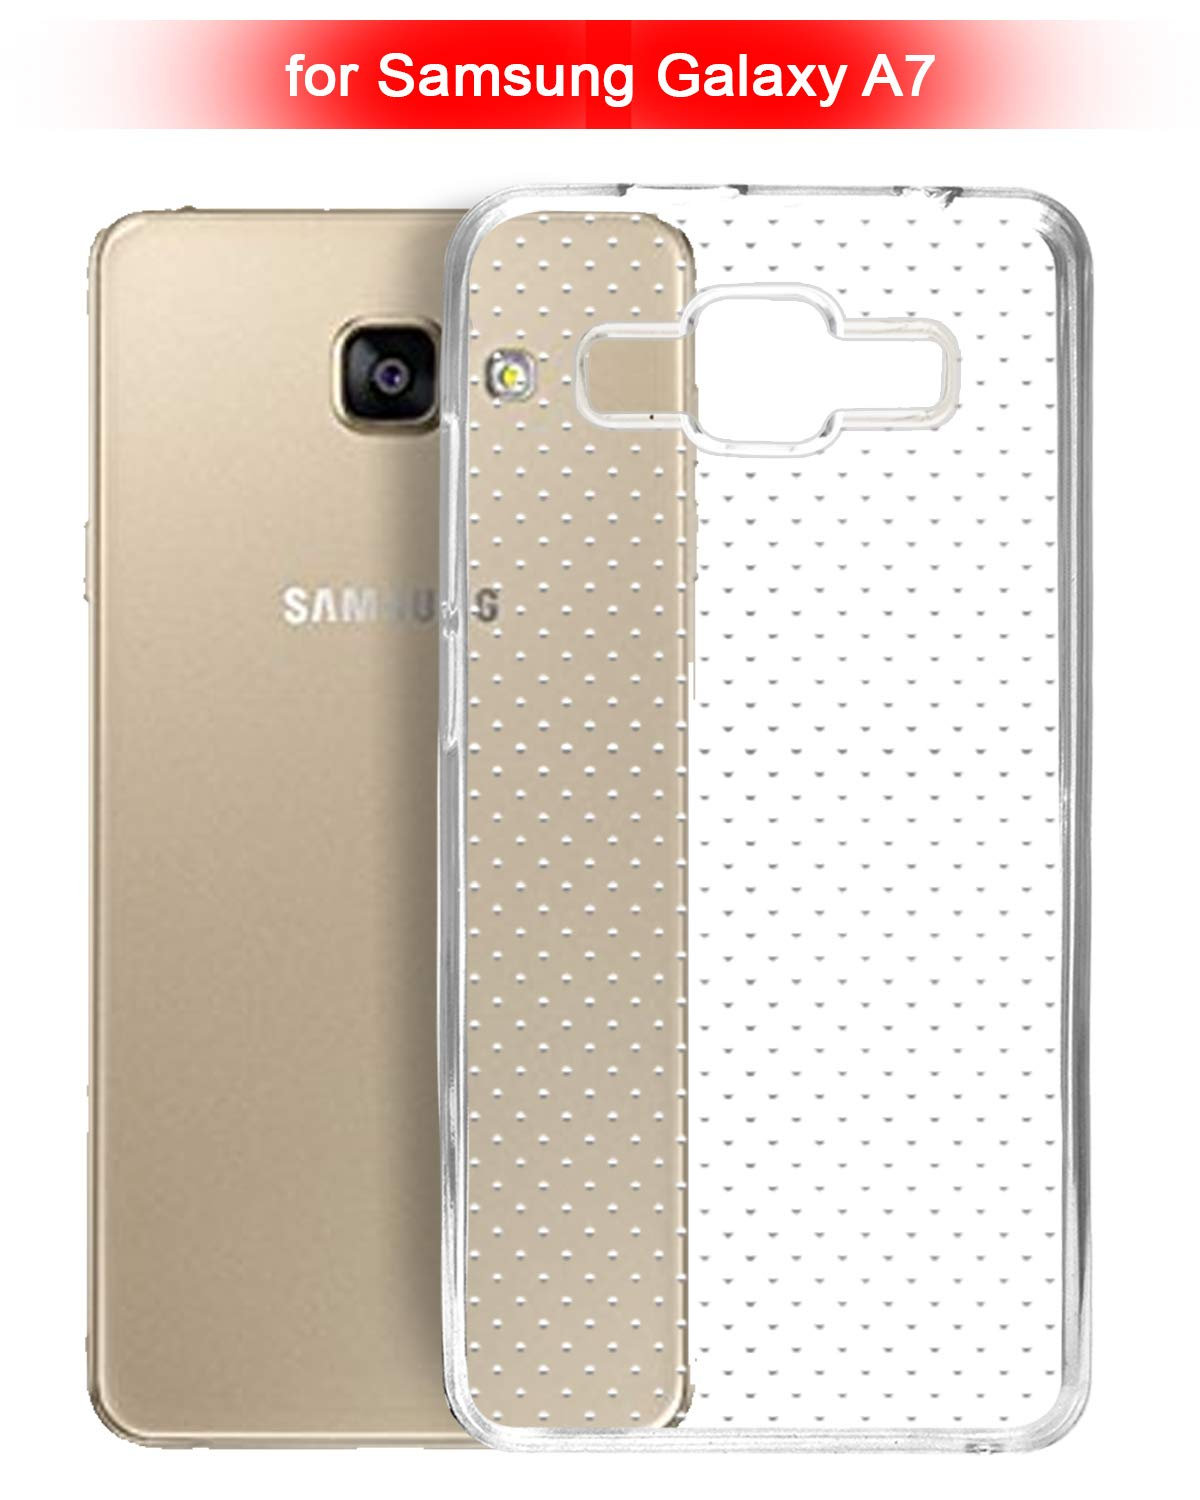 Samsung Galaxy A7 Silicone Soft Back Case Cover (Transparent)